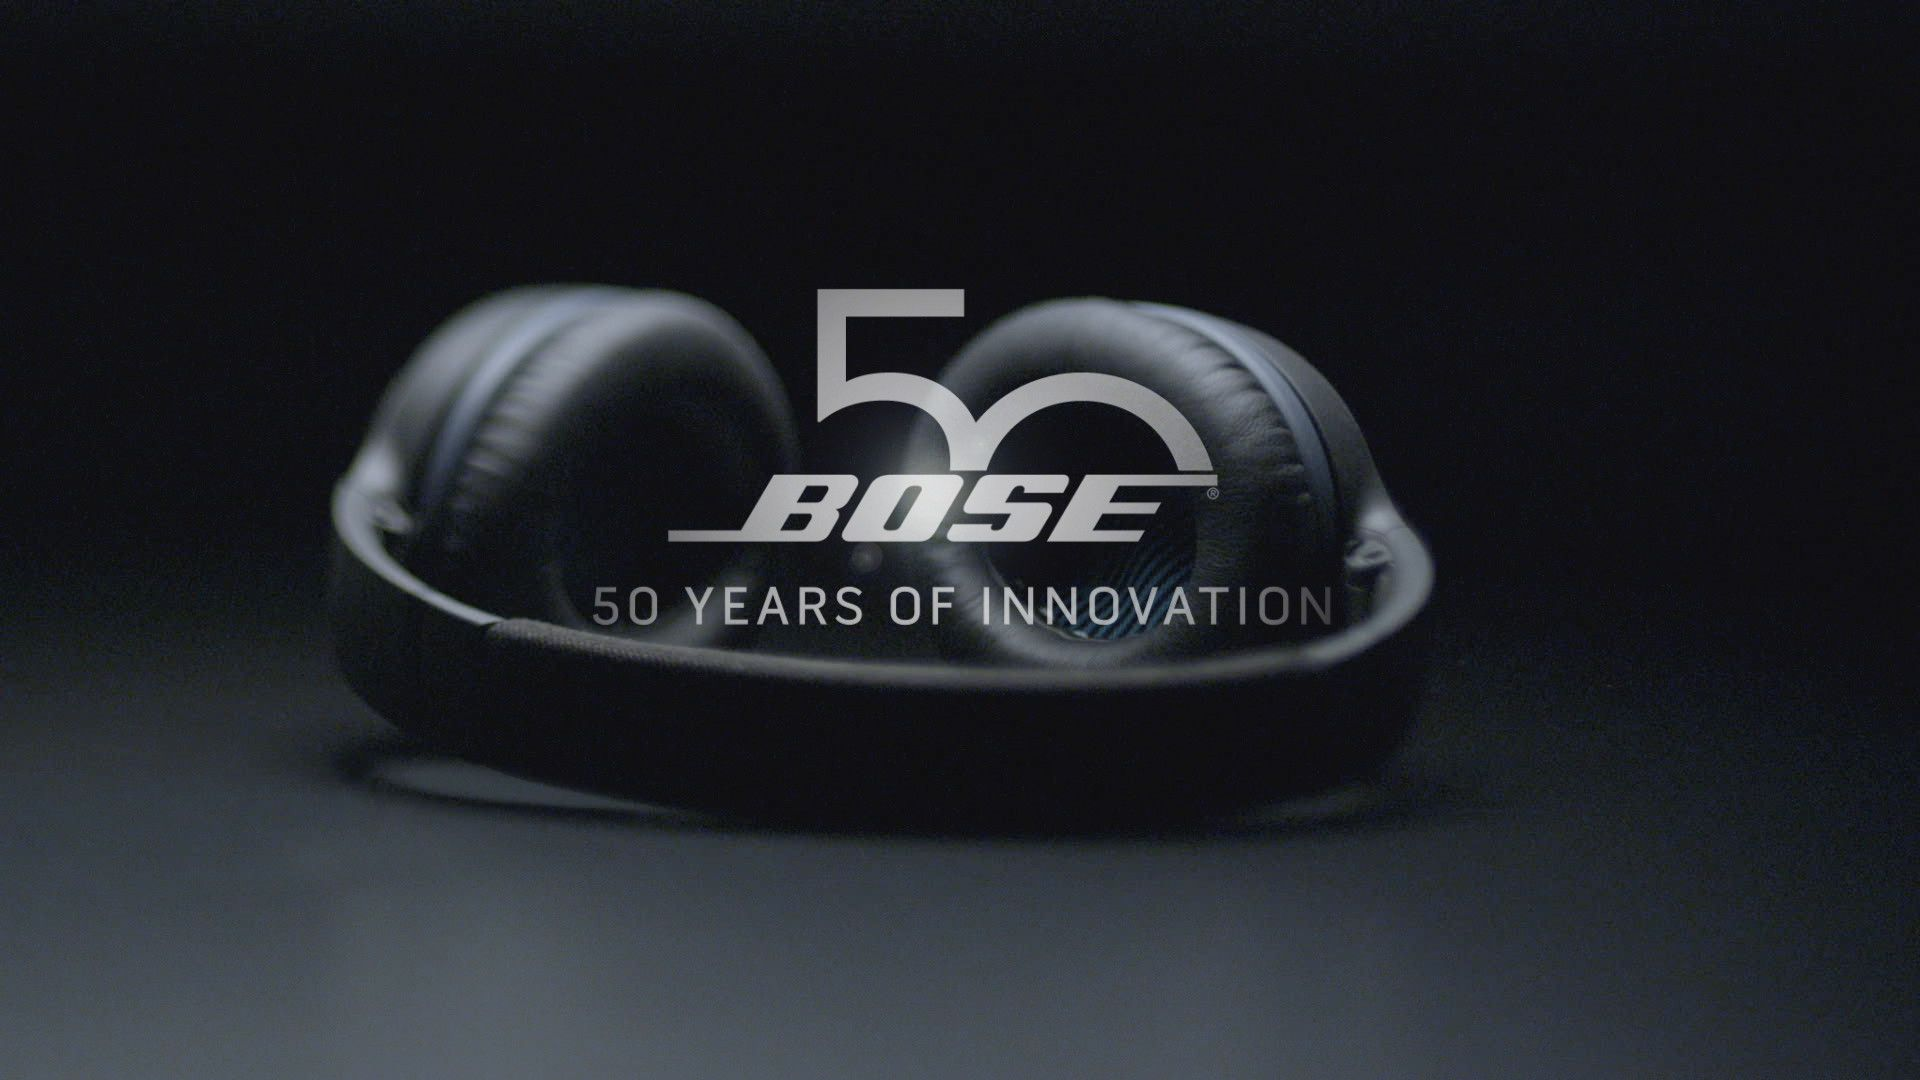 1920x1080 Bose Wallpapers (60+ images)